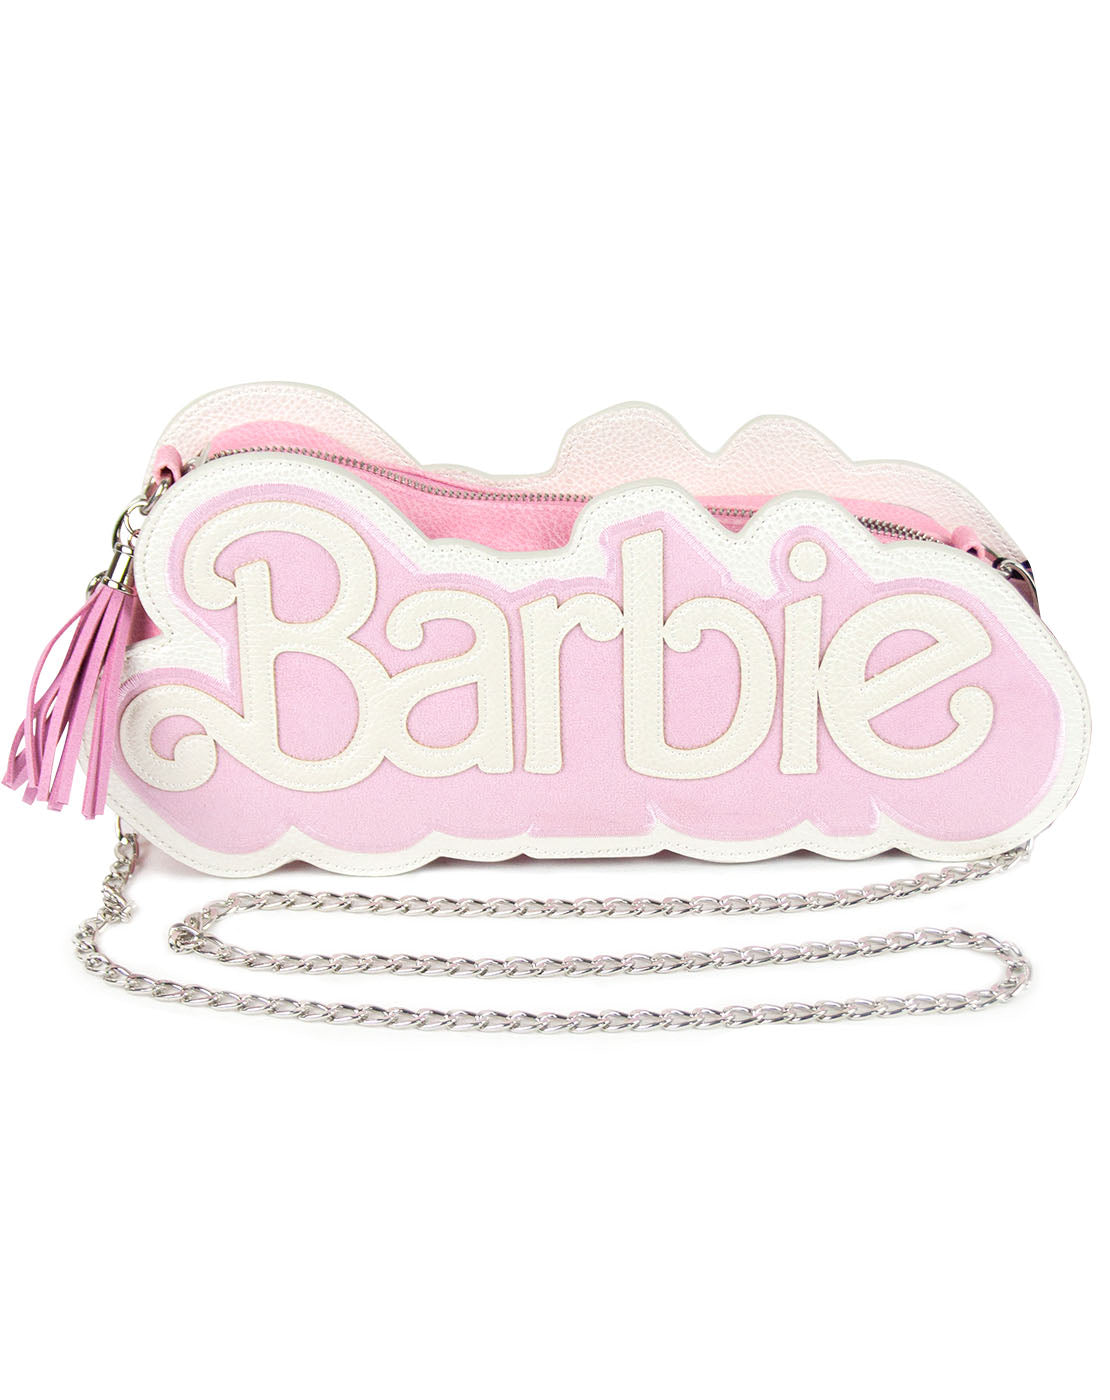 541e2a02ab7f Barbie Logo Cross Body Bag – Vanilla Underground